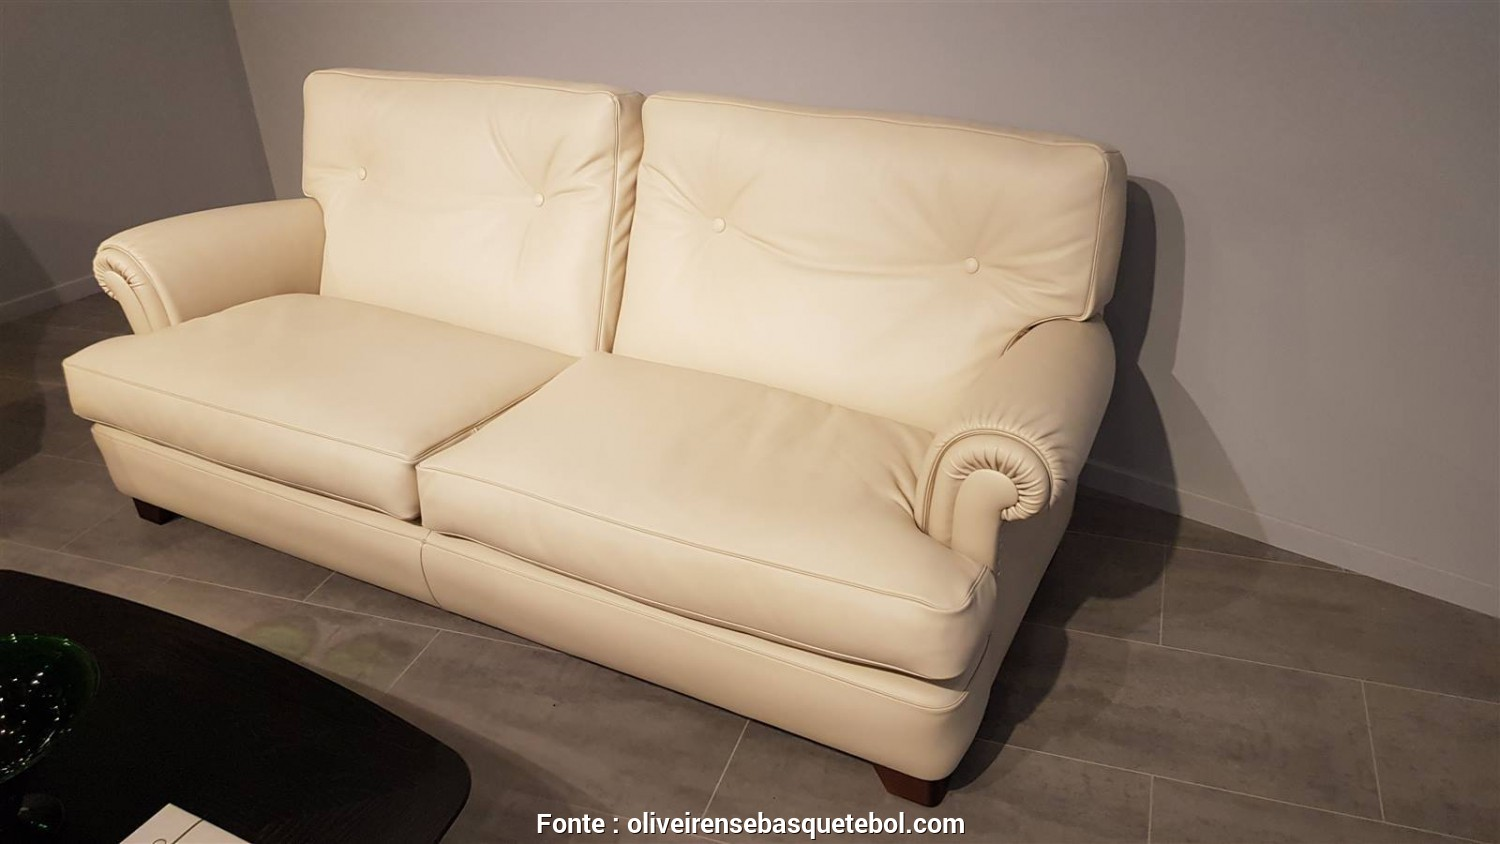 Divano Chester Wiki, Bello Sofa Chester Wikipedia, Living Divani Extra Soft Sofa Price Idee